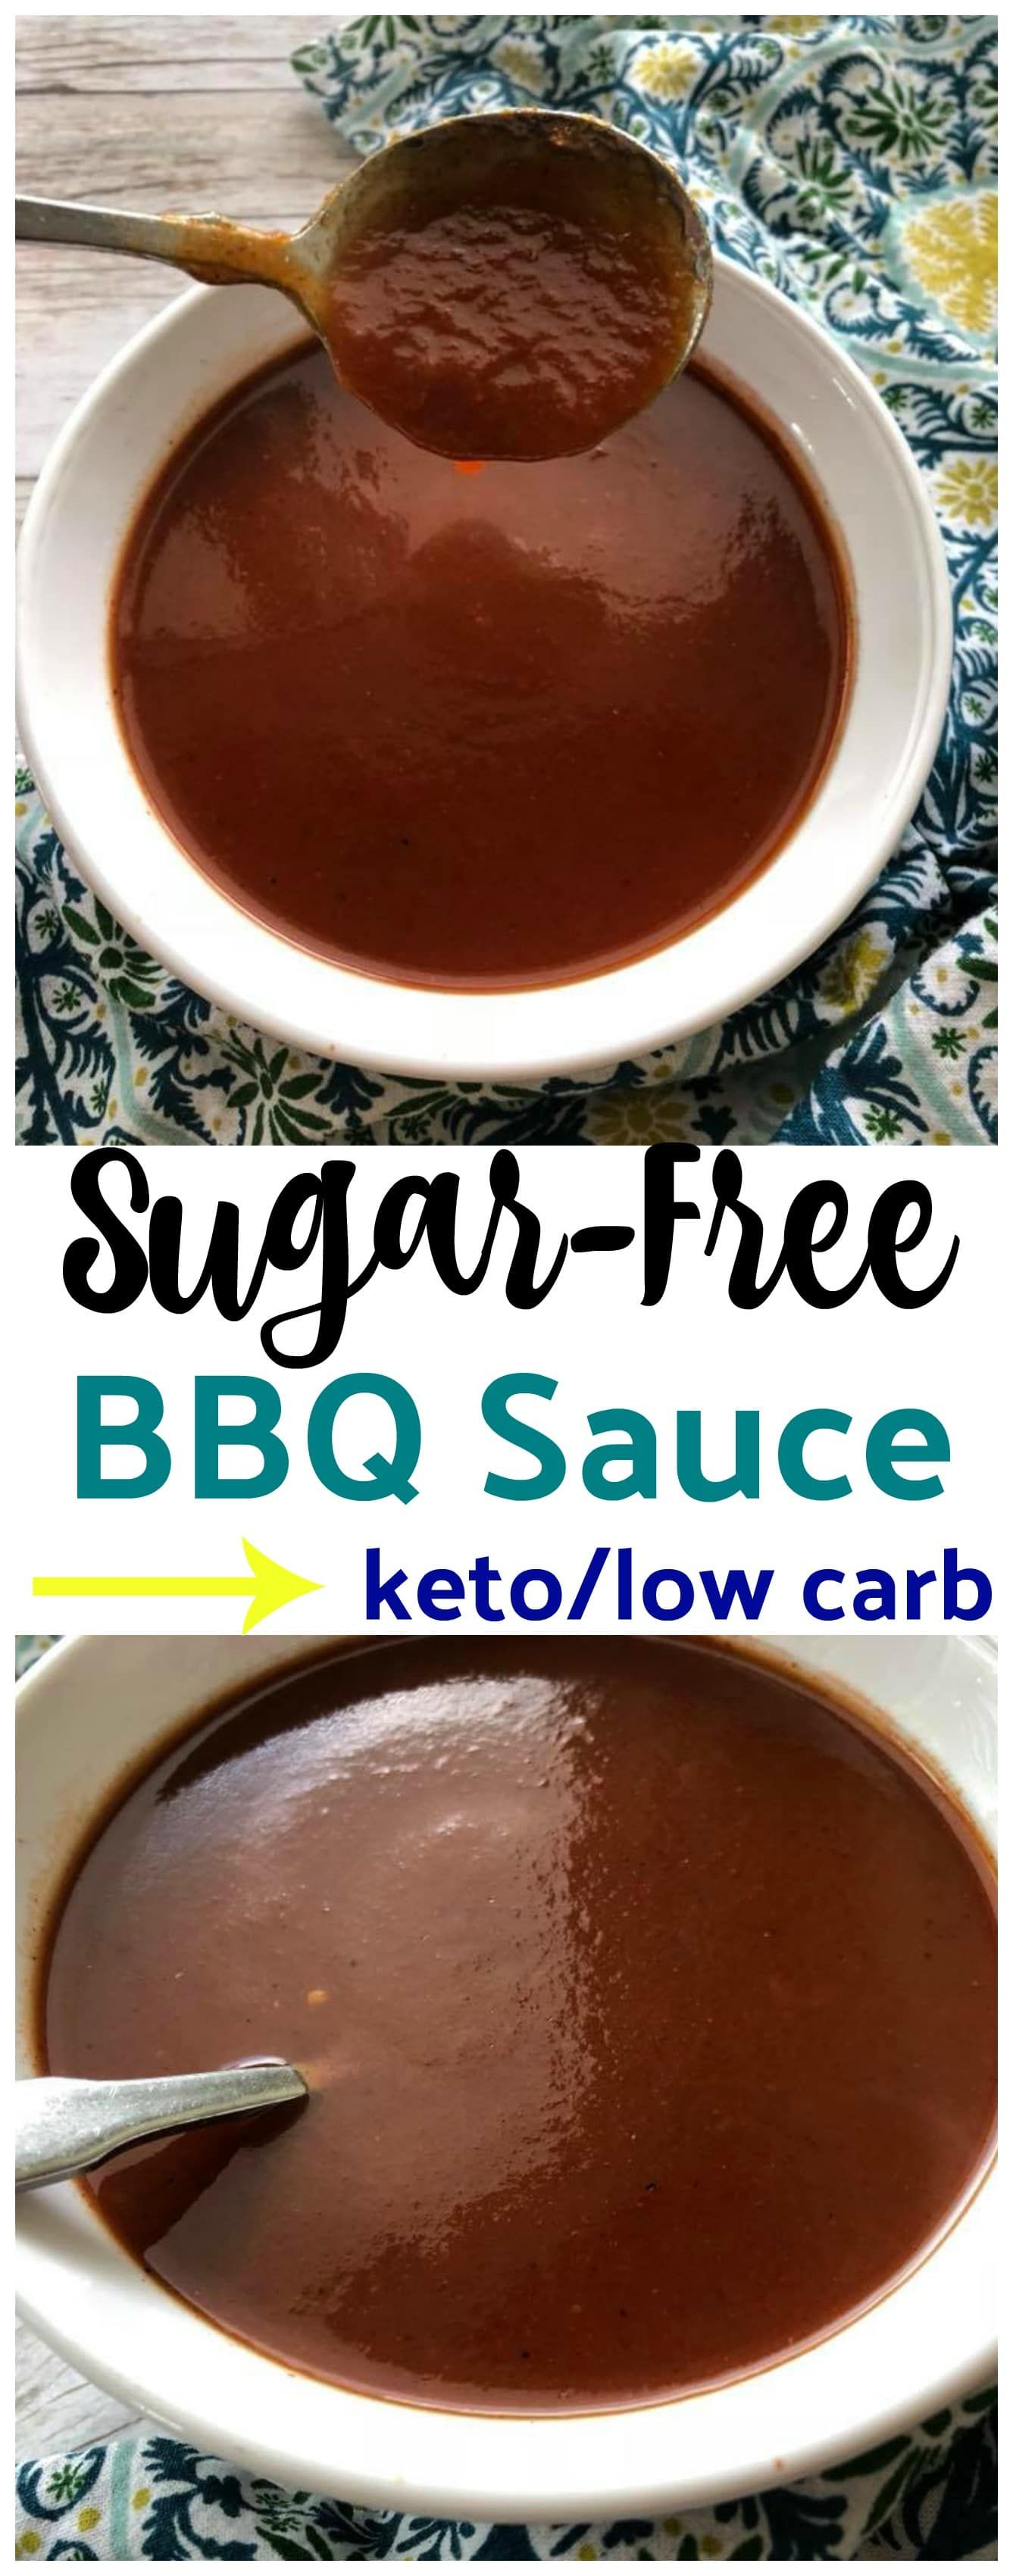 Homemade Low Carb SugarFree BBQ Sauce {keto friendly